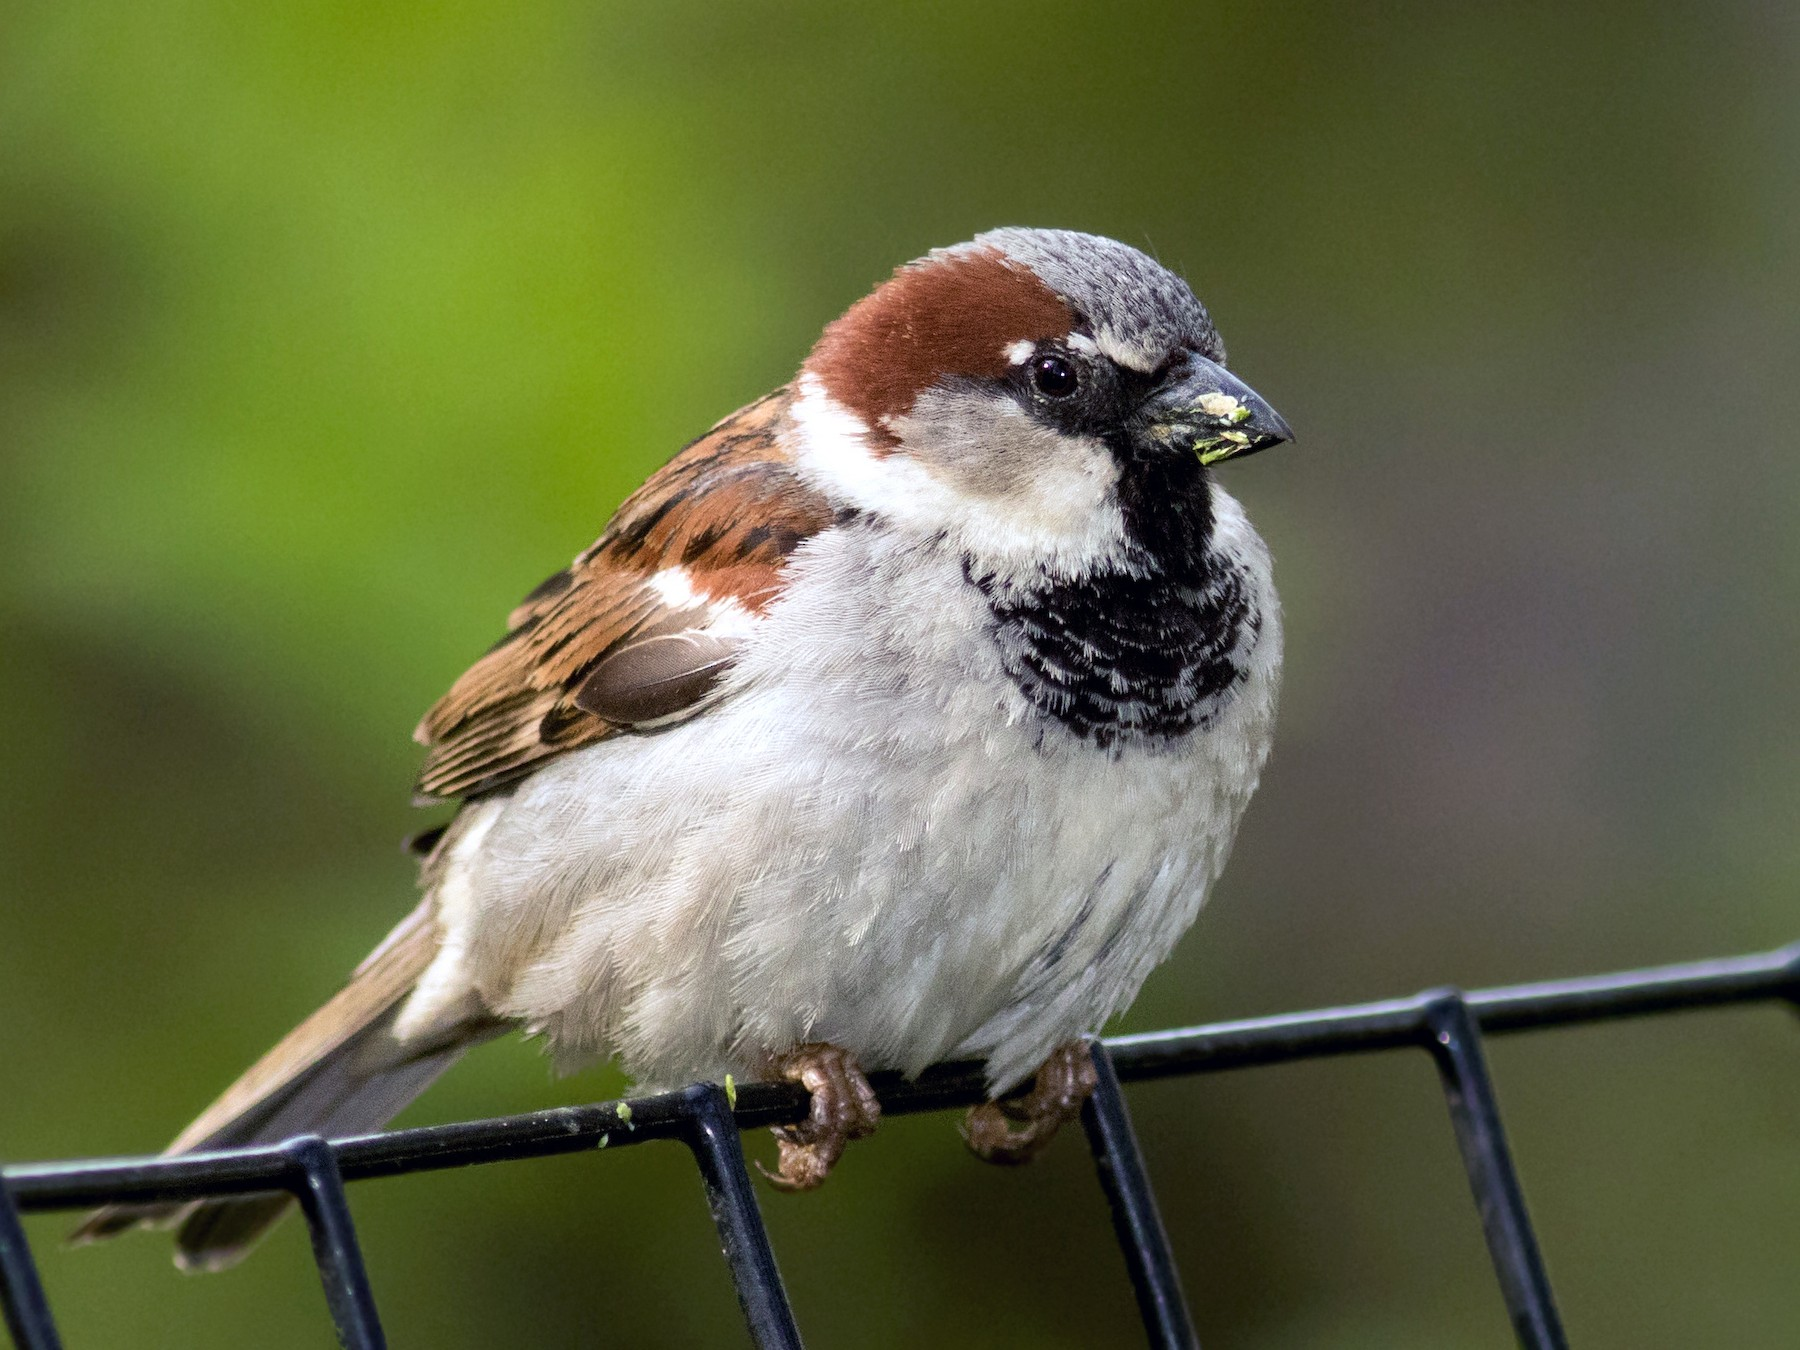 """""""The world Sparrow Day.""""- No selfie with the sparrow, Only candied memory."""